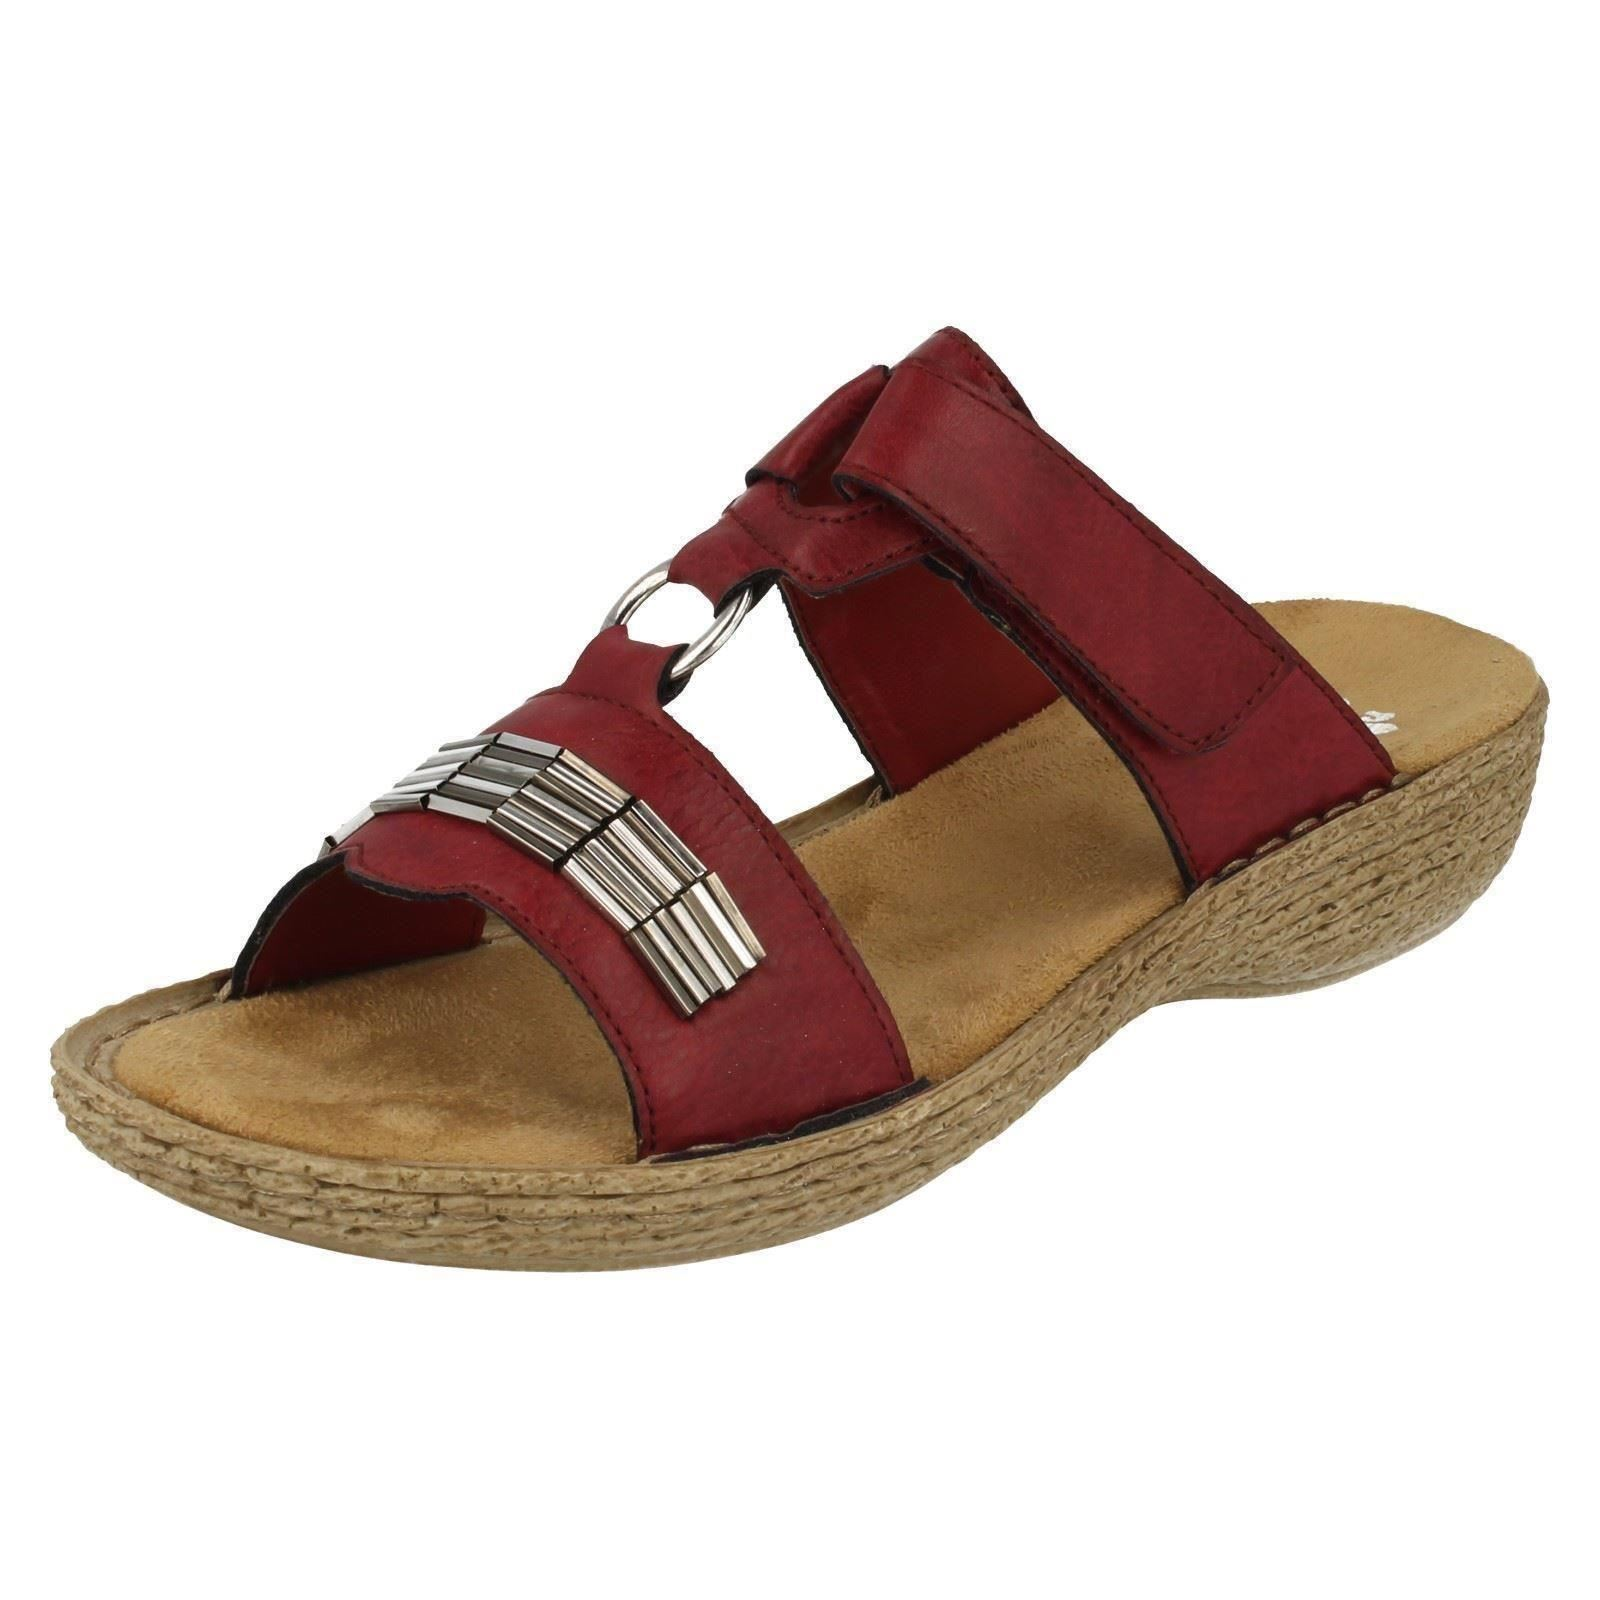 Man/Woman Ladies Rieker Sandals 65860 High security Highly praised and the appreciated by the and consumer audience have fun c3c877